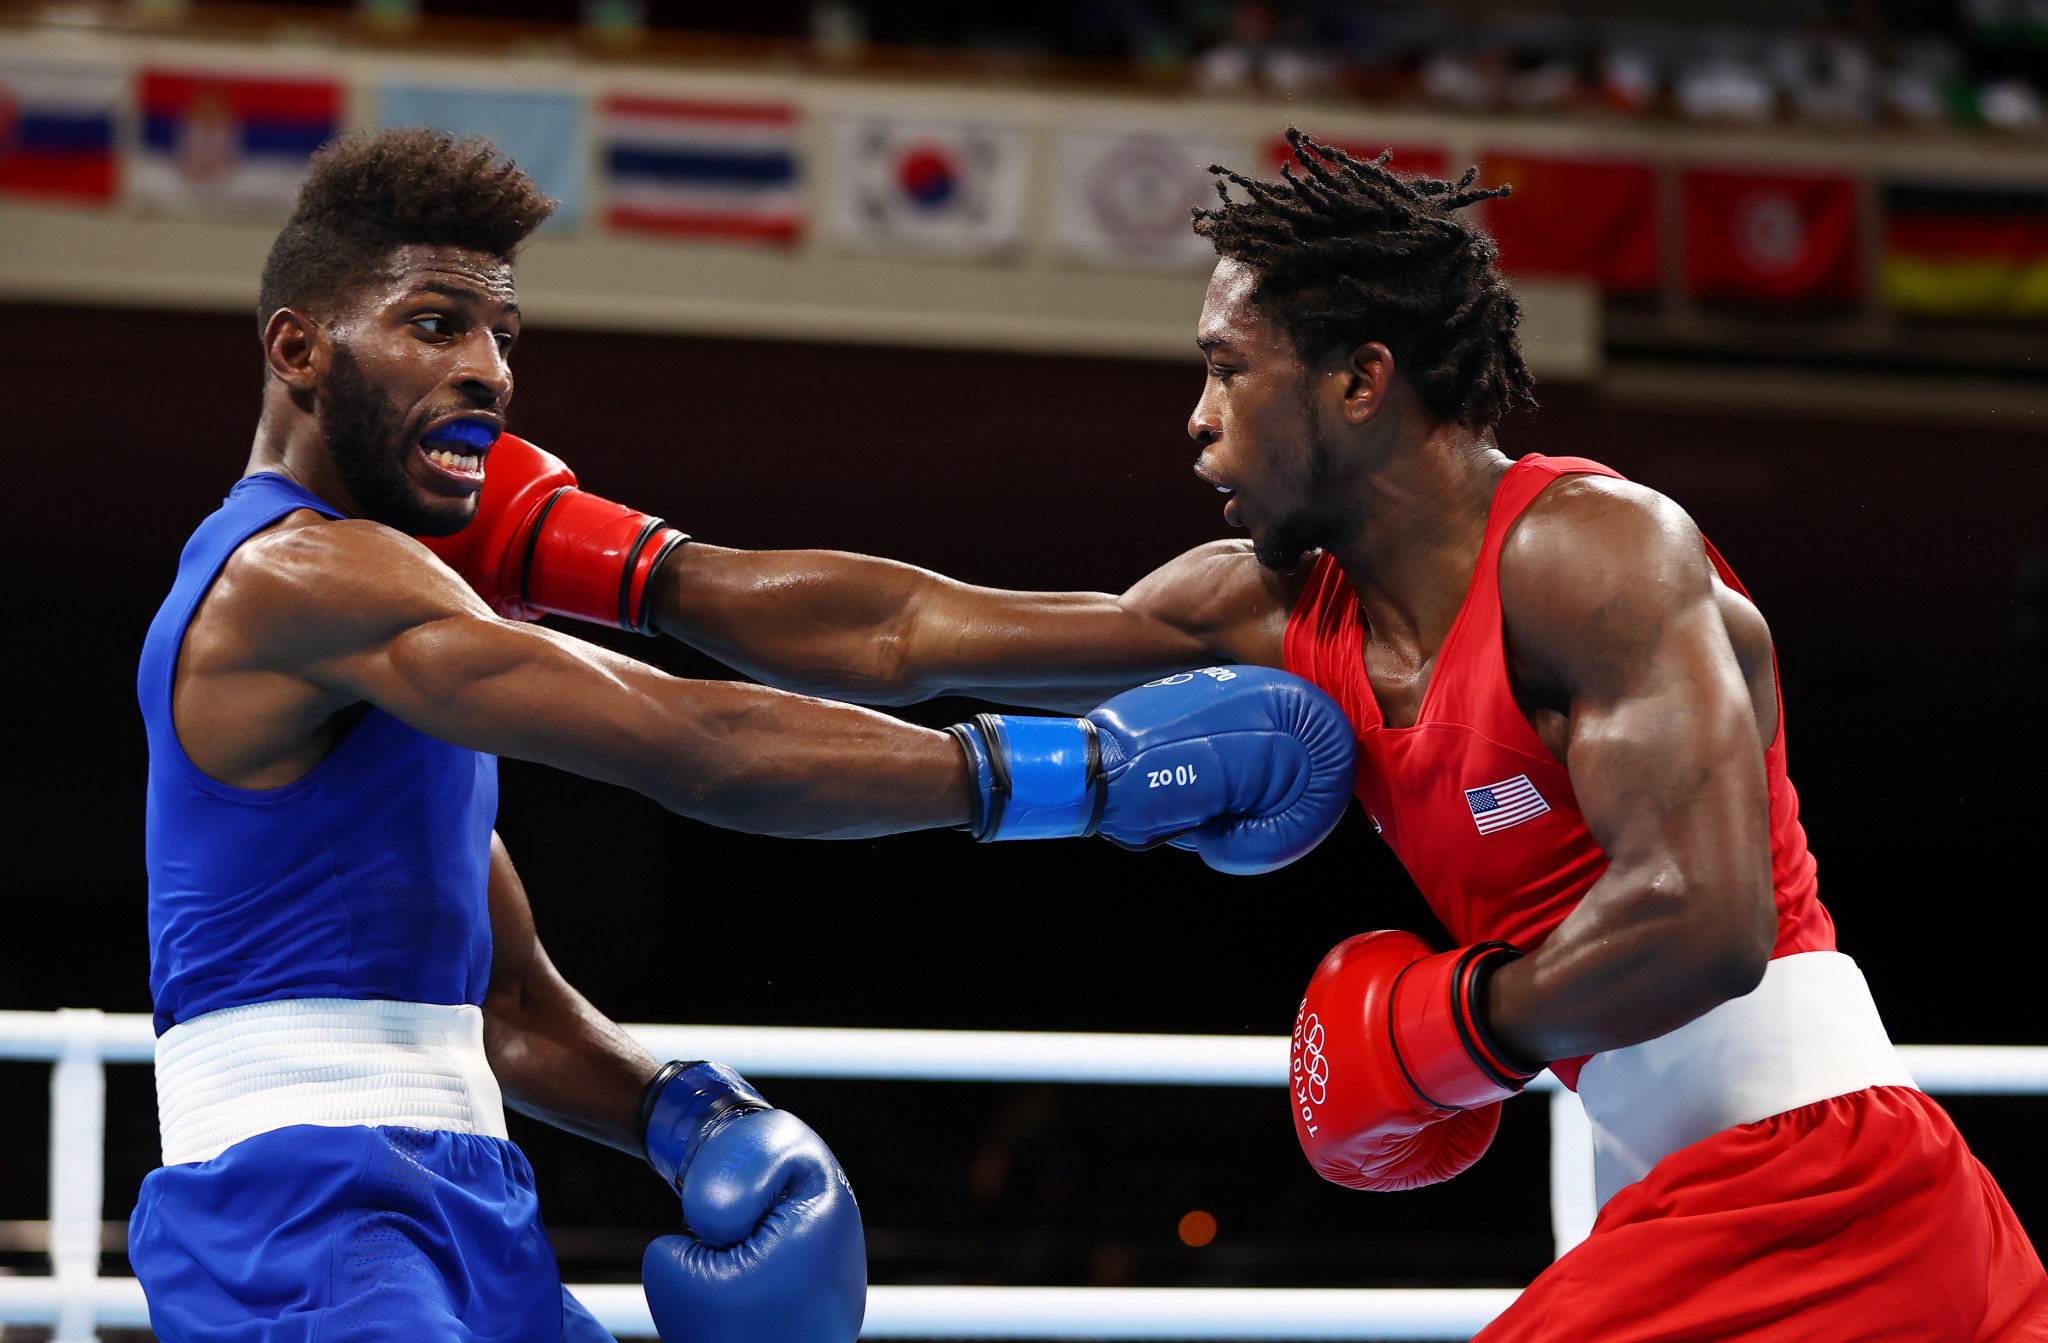 Val Barker Trophy will not be awarded for Tokyo 2020 due to AIBA suspension